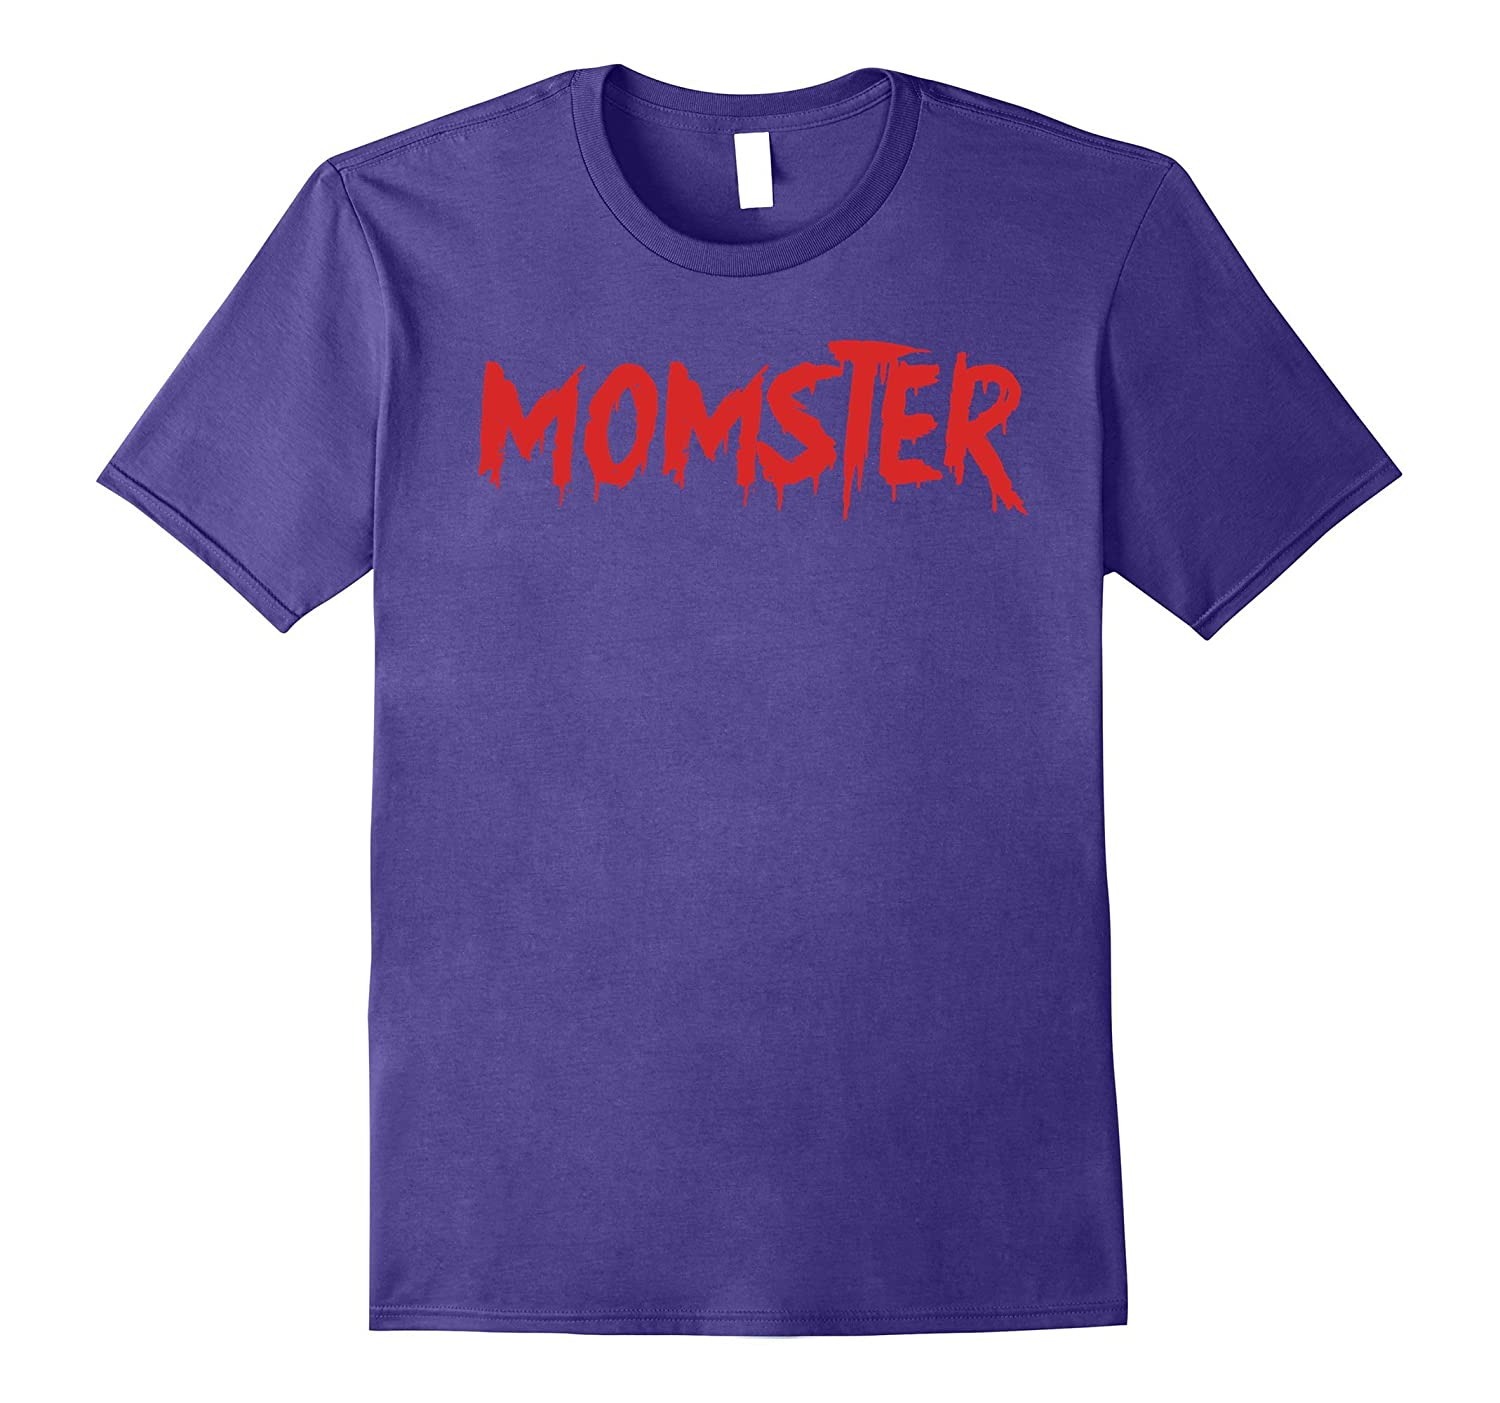 Momster Funny Halloween T-Shirt for Easy Mom Costume-TJ